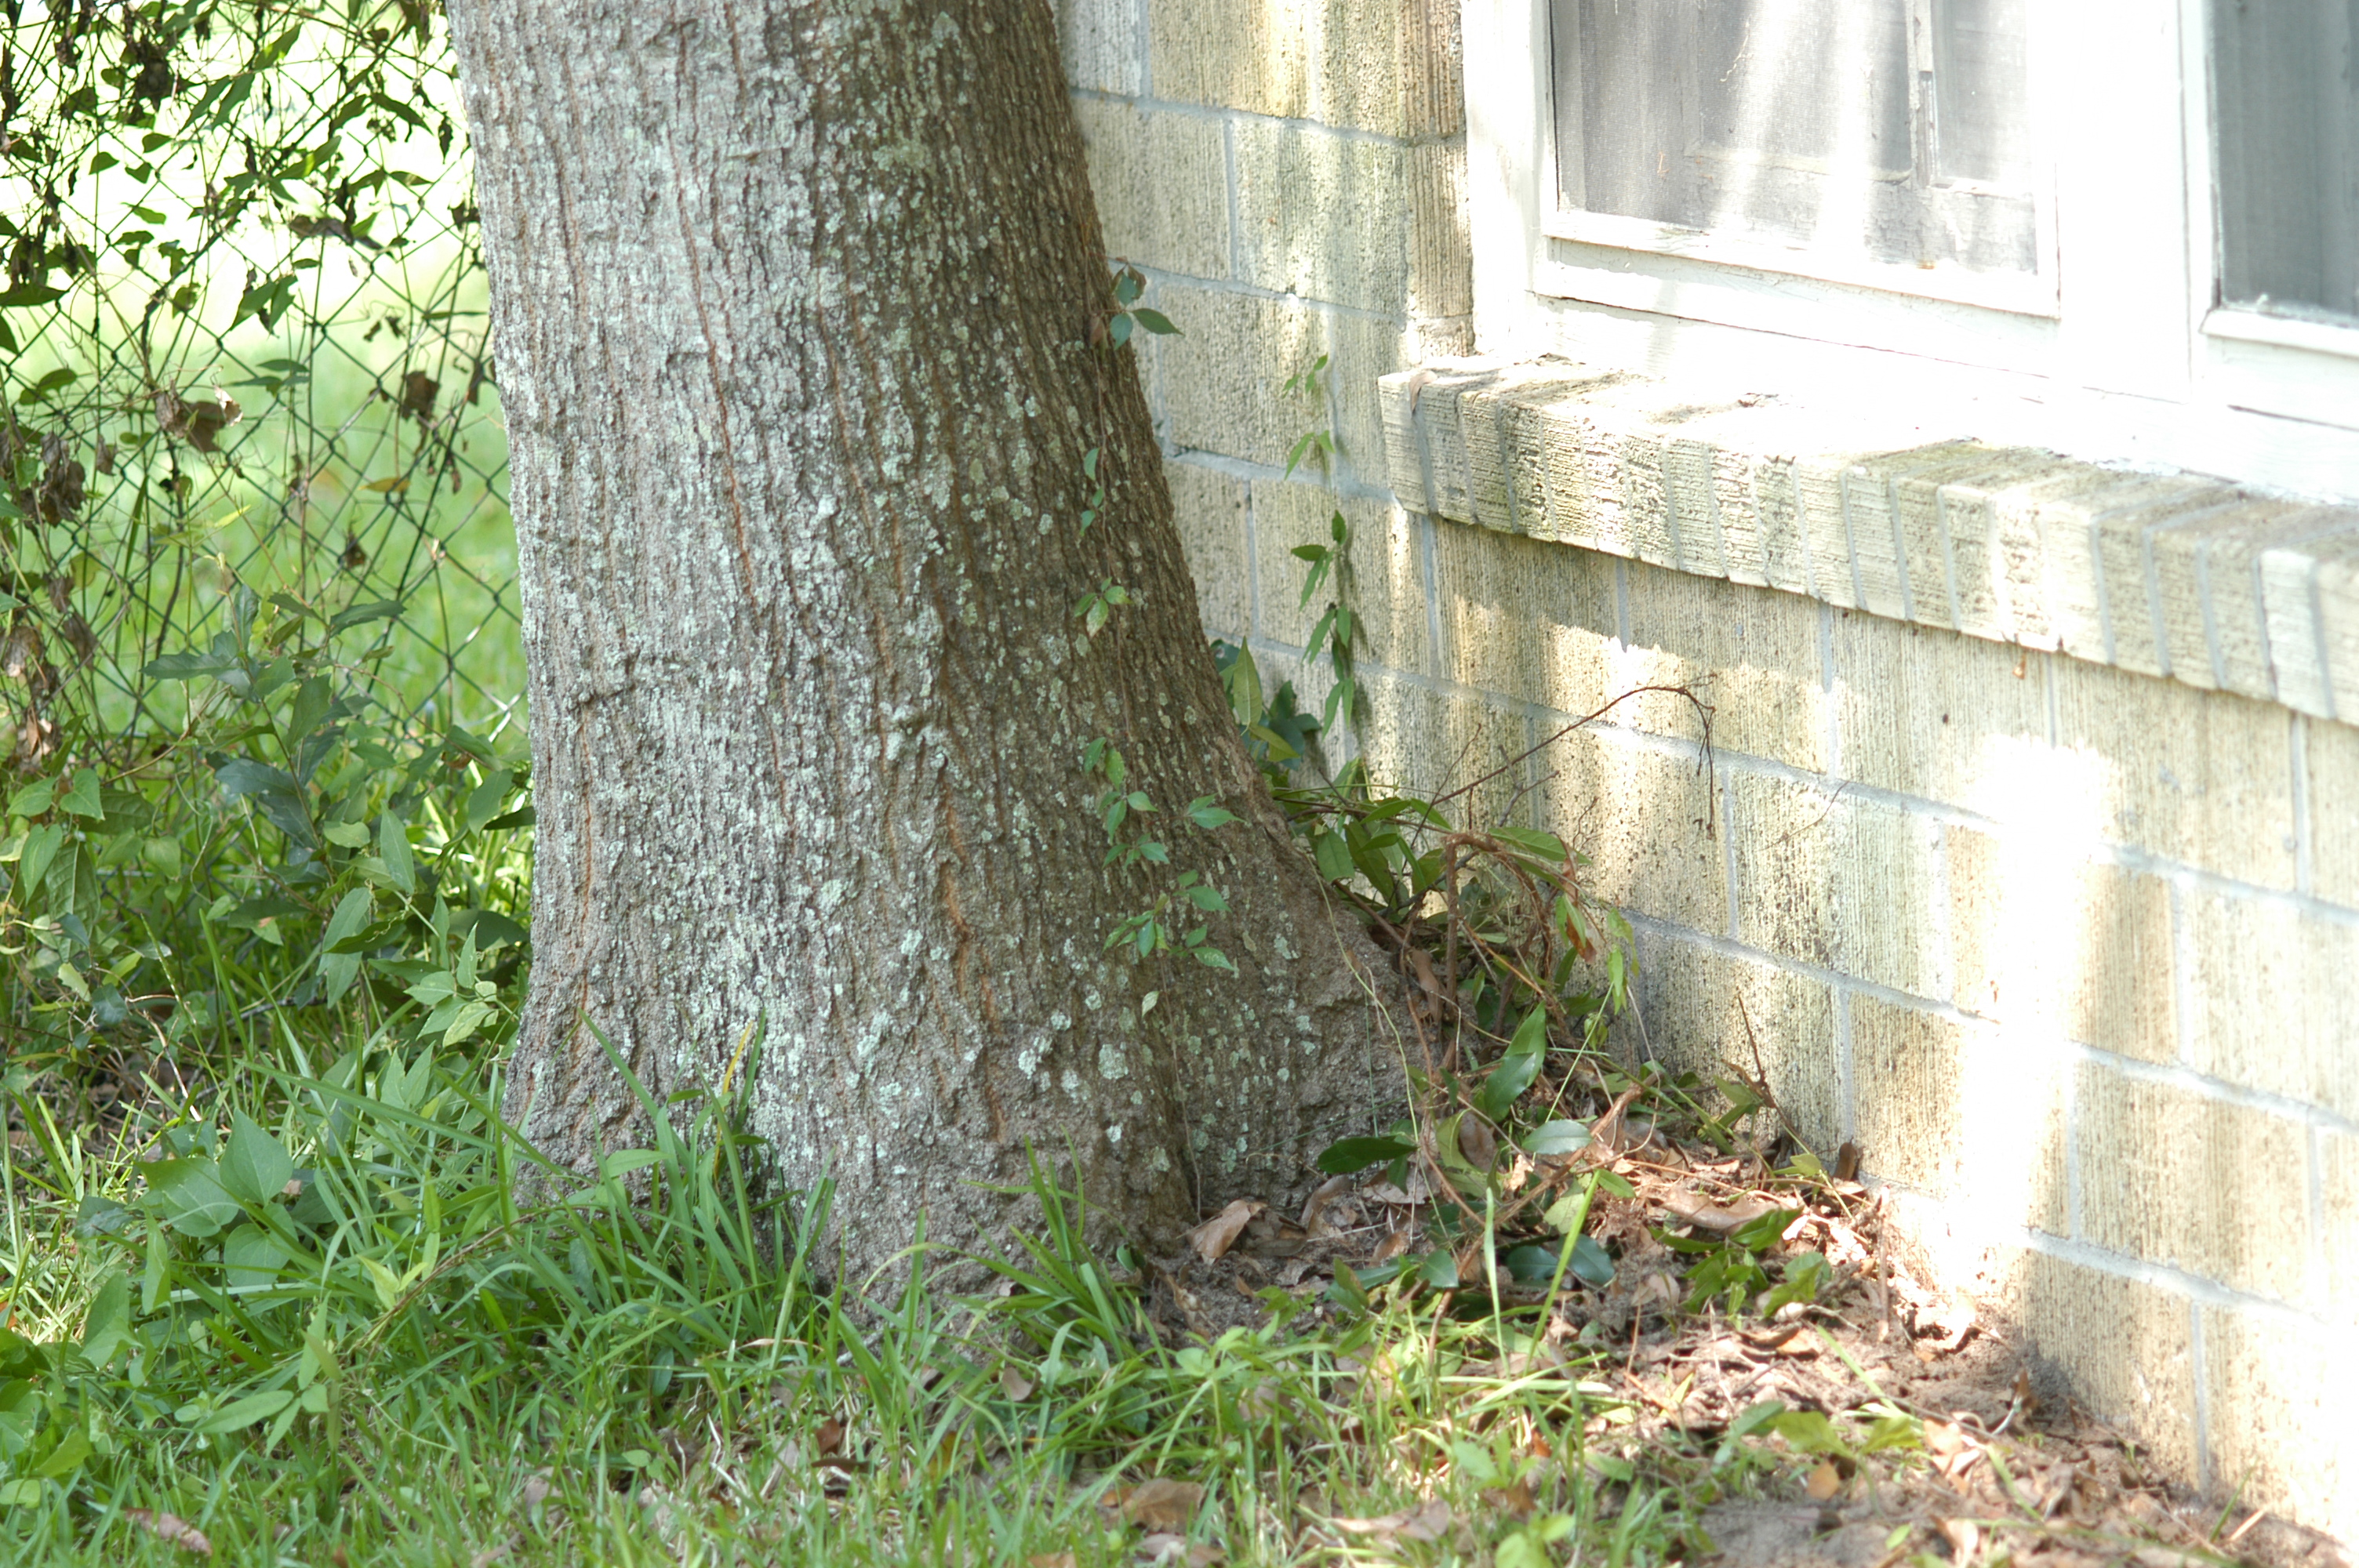 Decaying tree roots lead termites into building